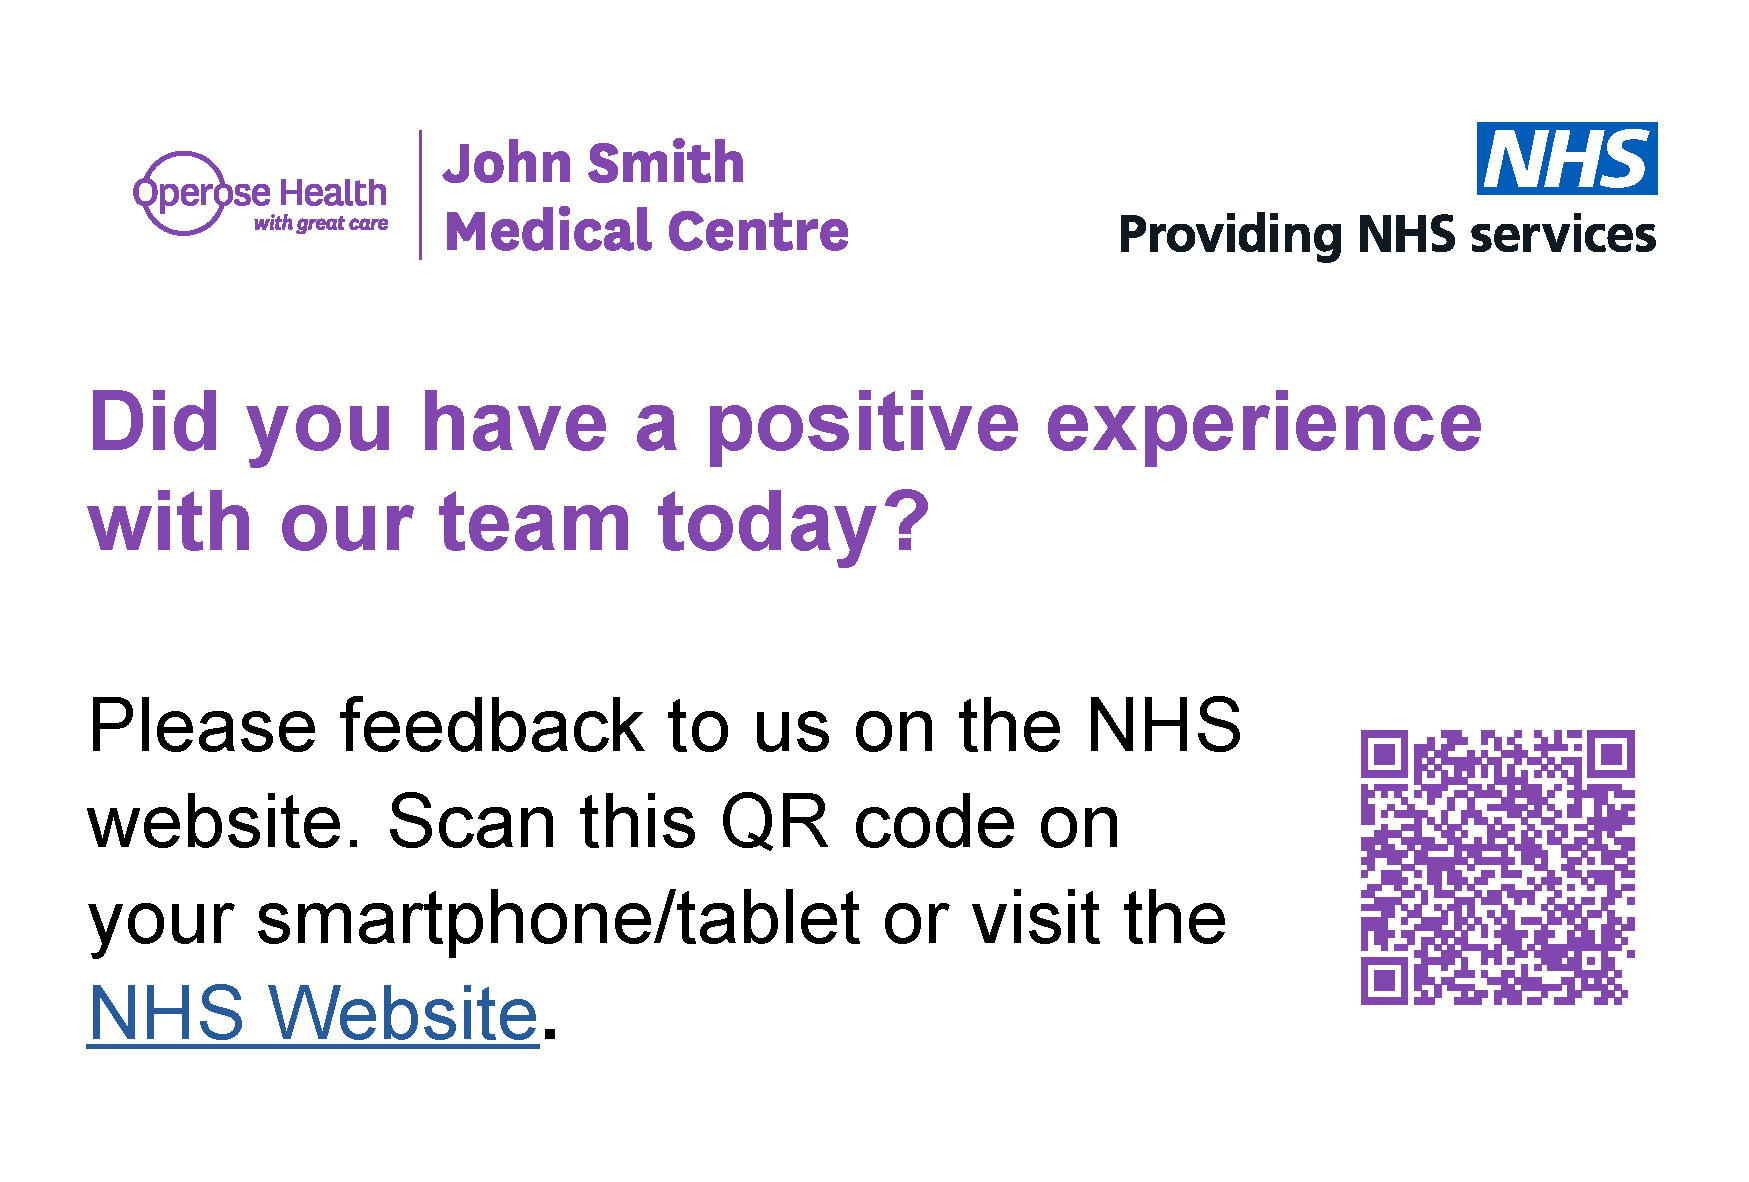 Banner - Did you have a positive experience with our team today? Leave us a review on the NHS website.